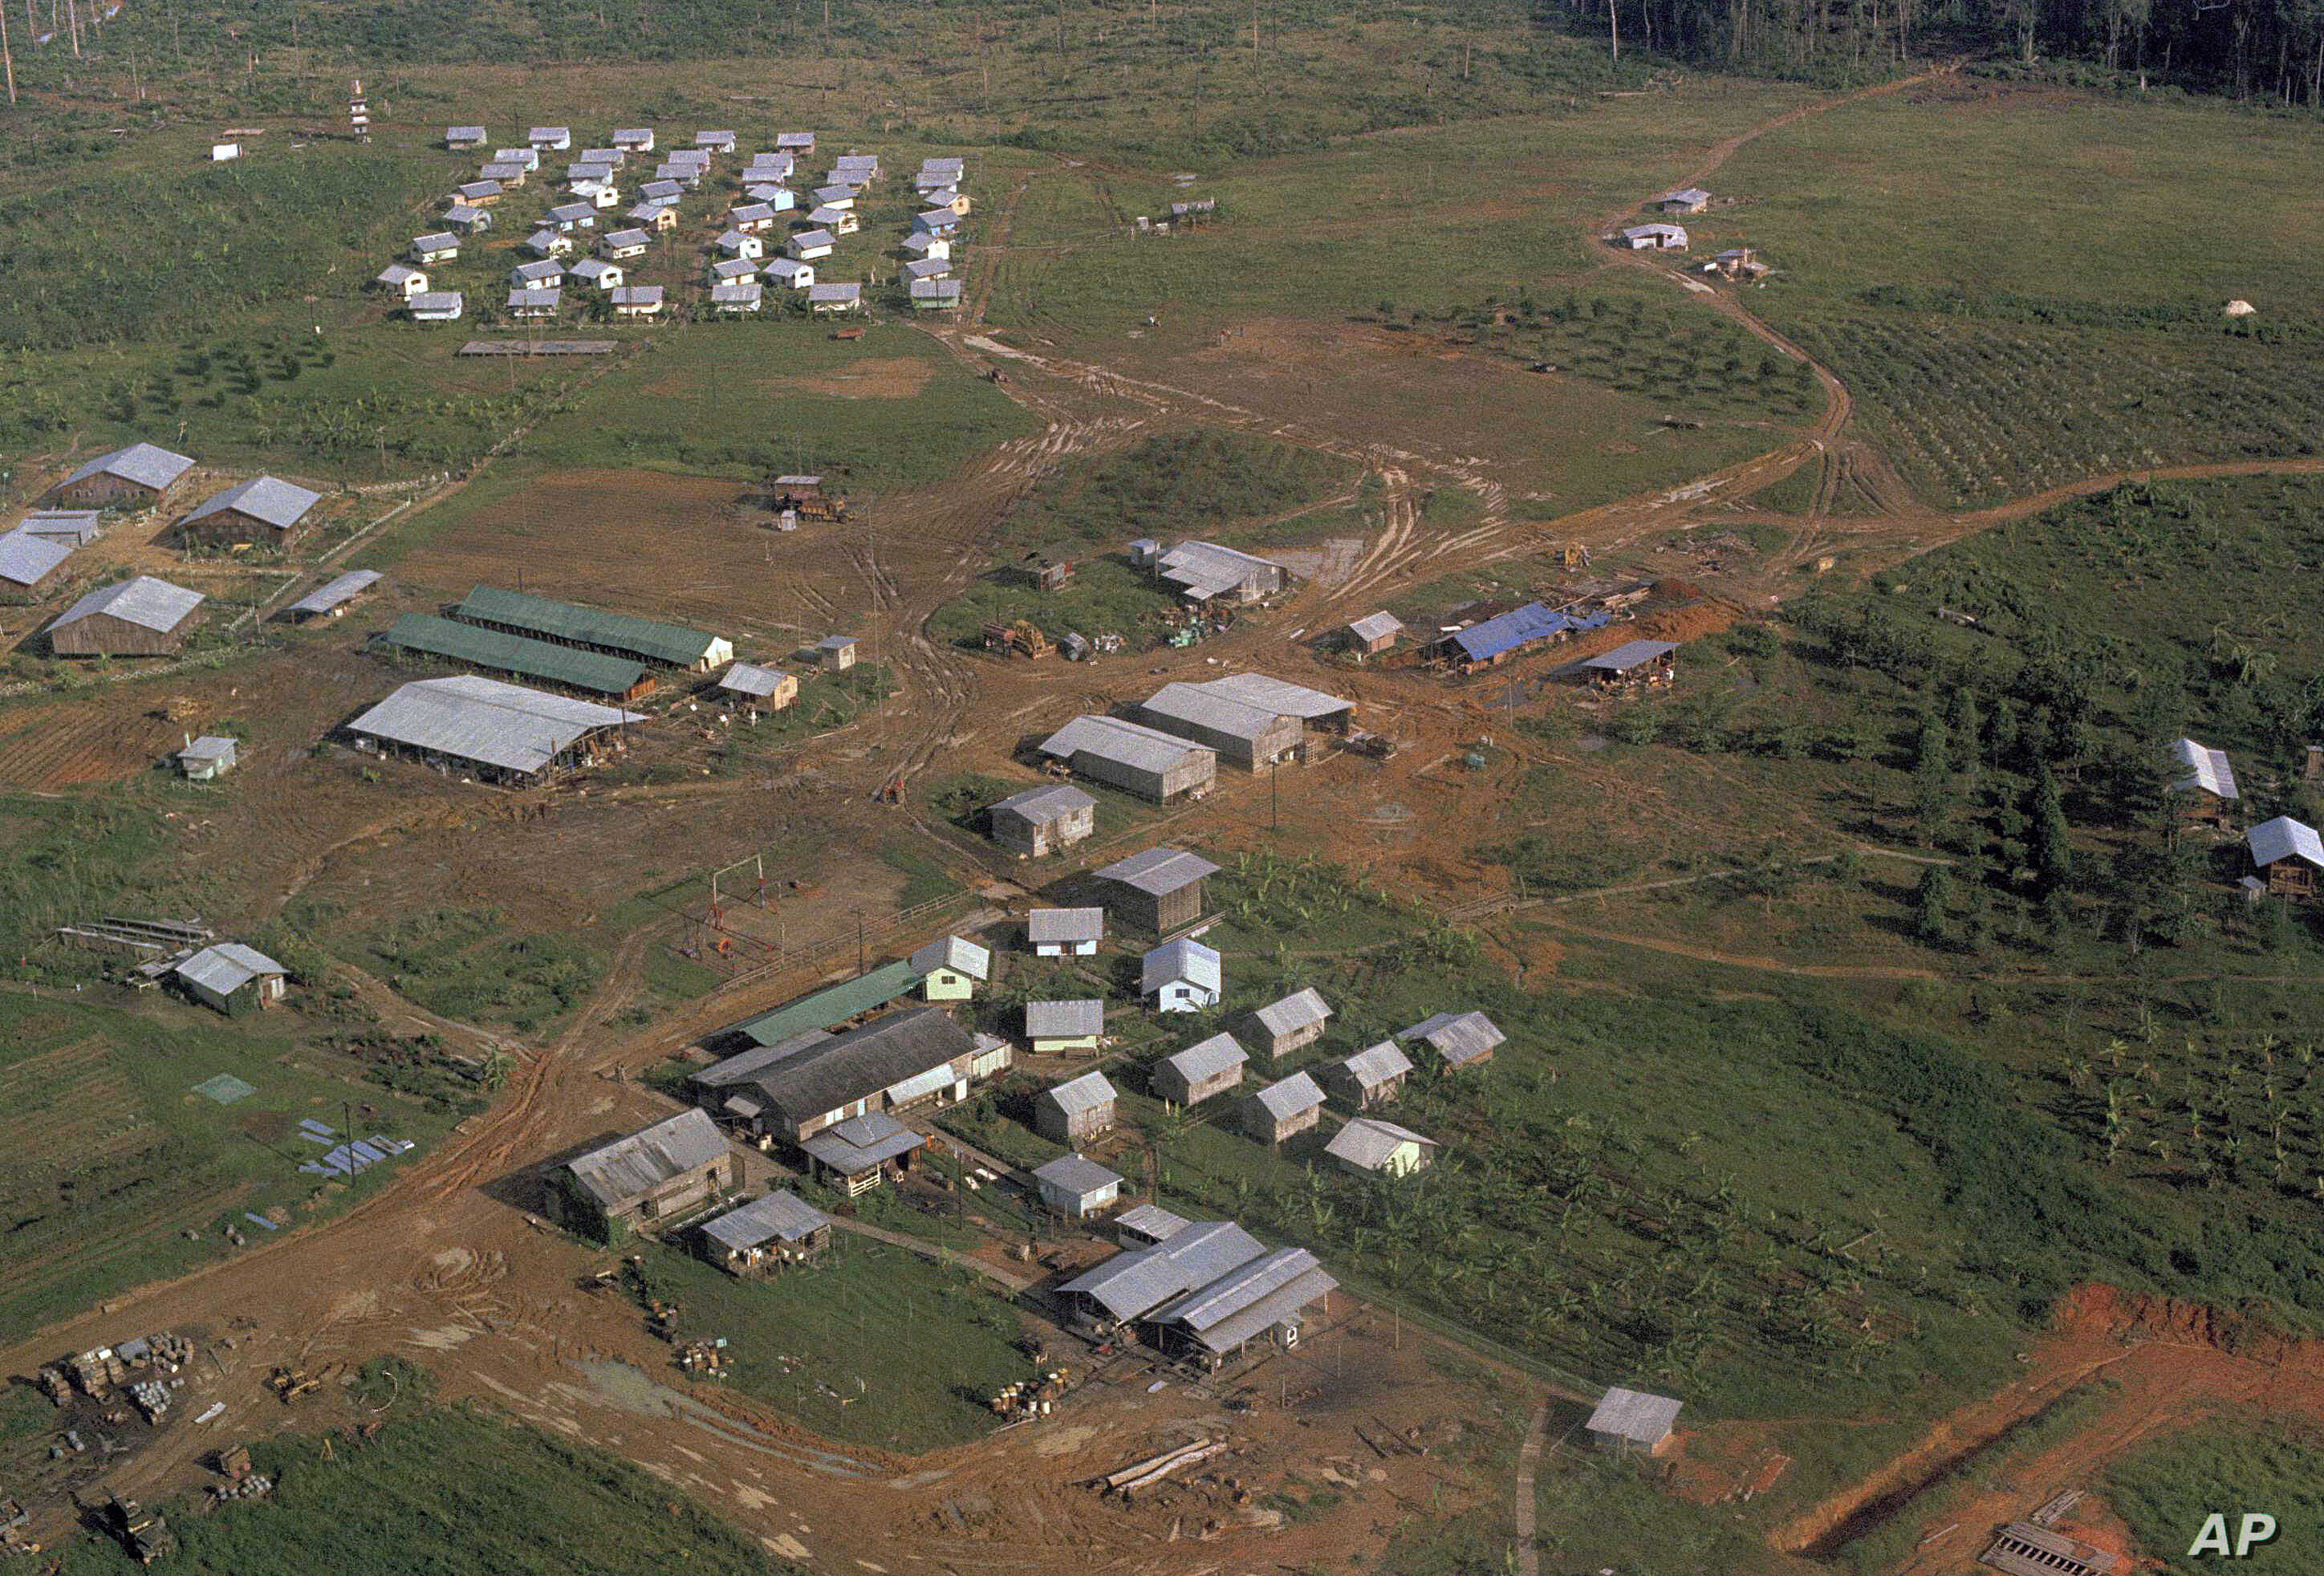 FILE - This Nov. 1978 file photo shows the Peoples Temple compound, led by Jim Jones, after bodies were removed, in Jonestown, Guyana.